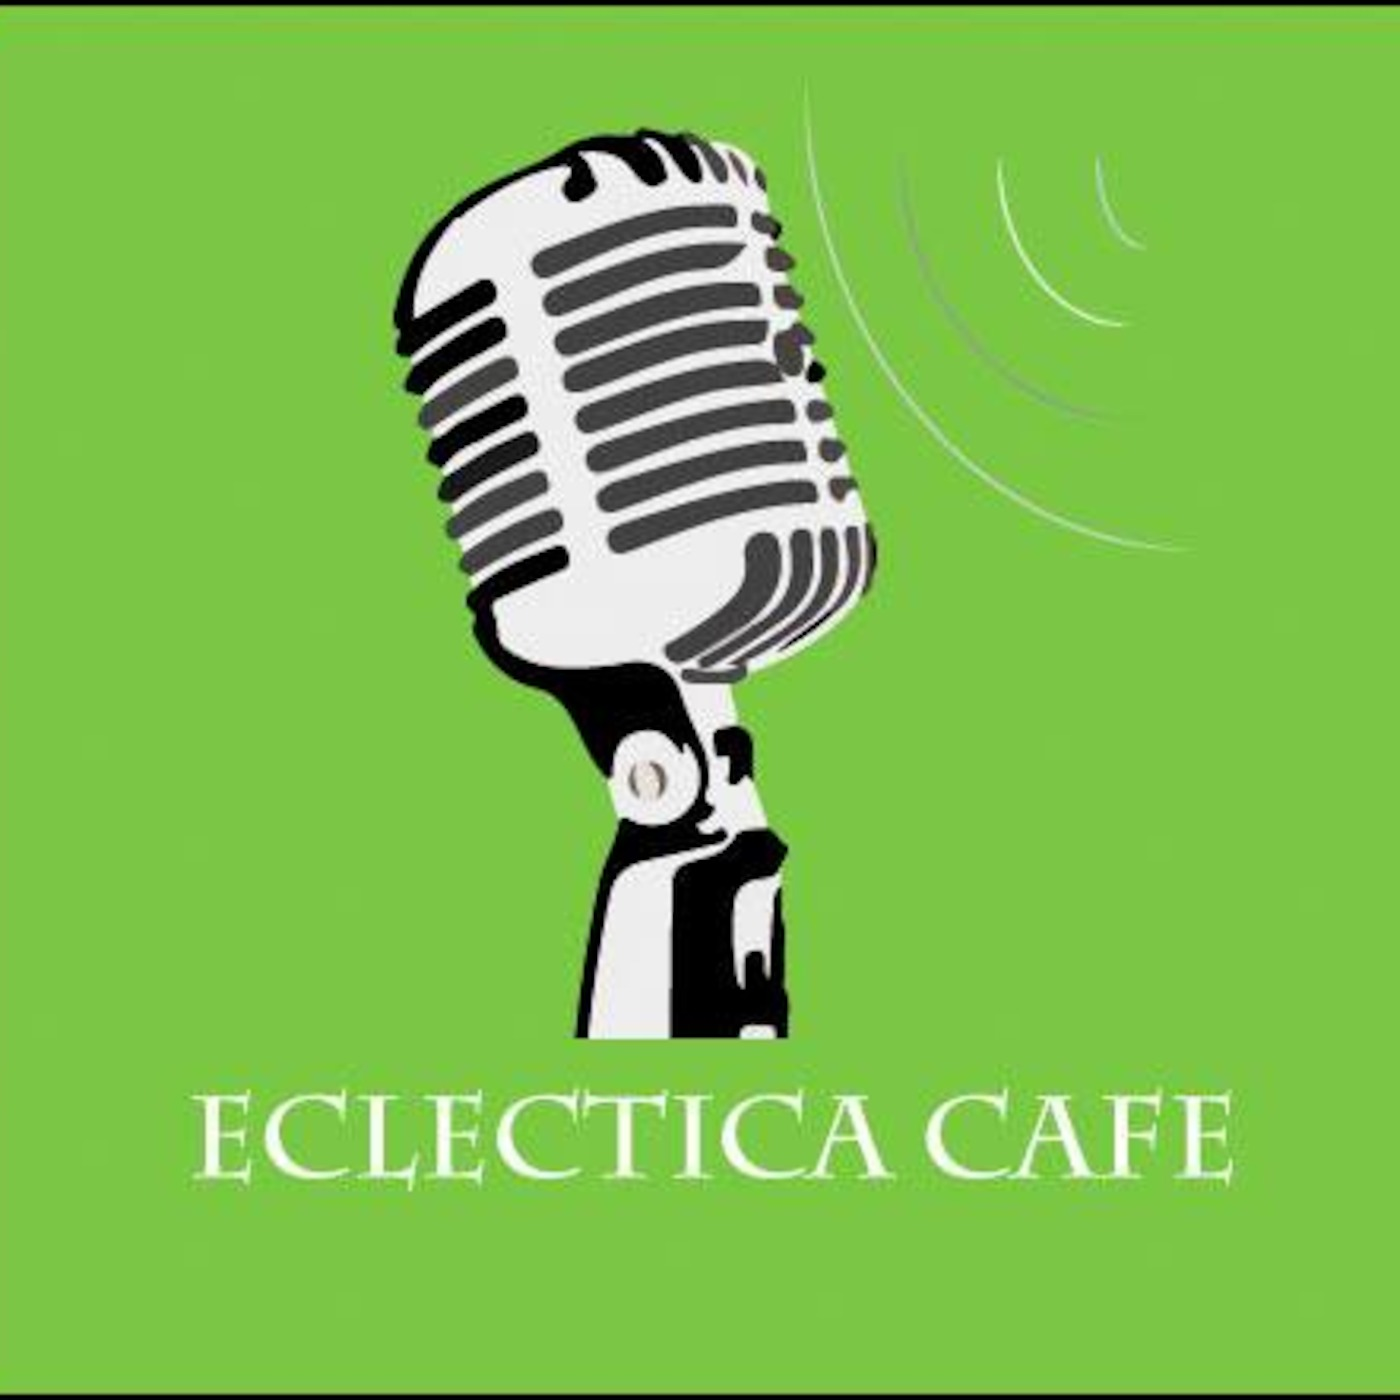 EclecticaCafe